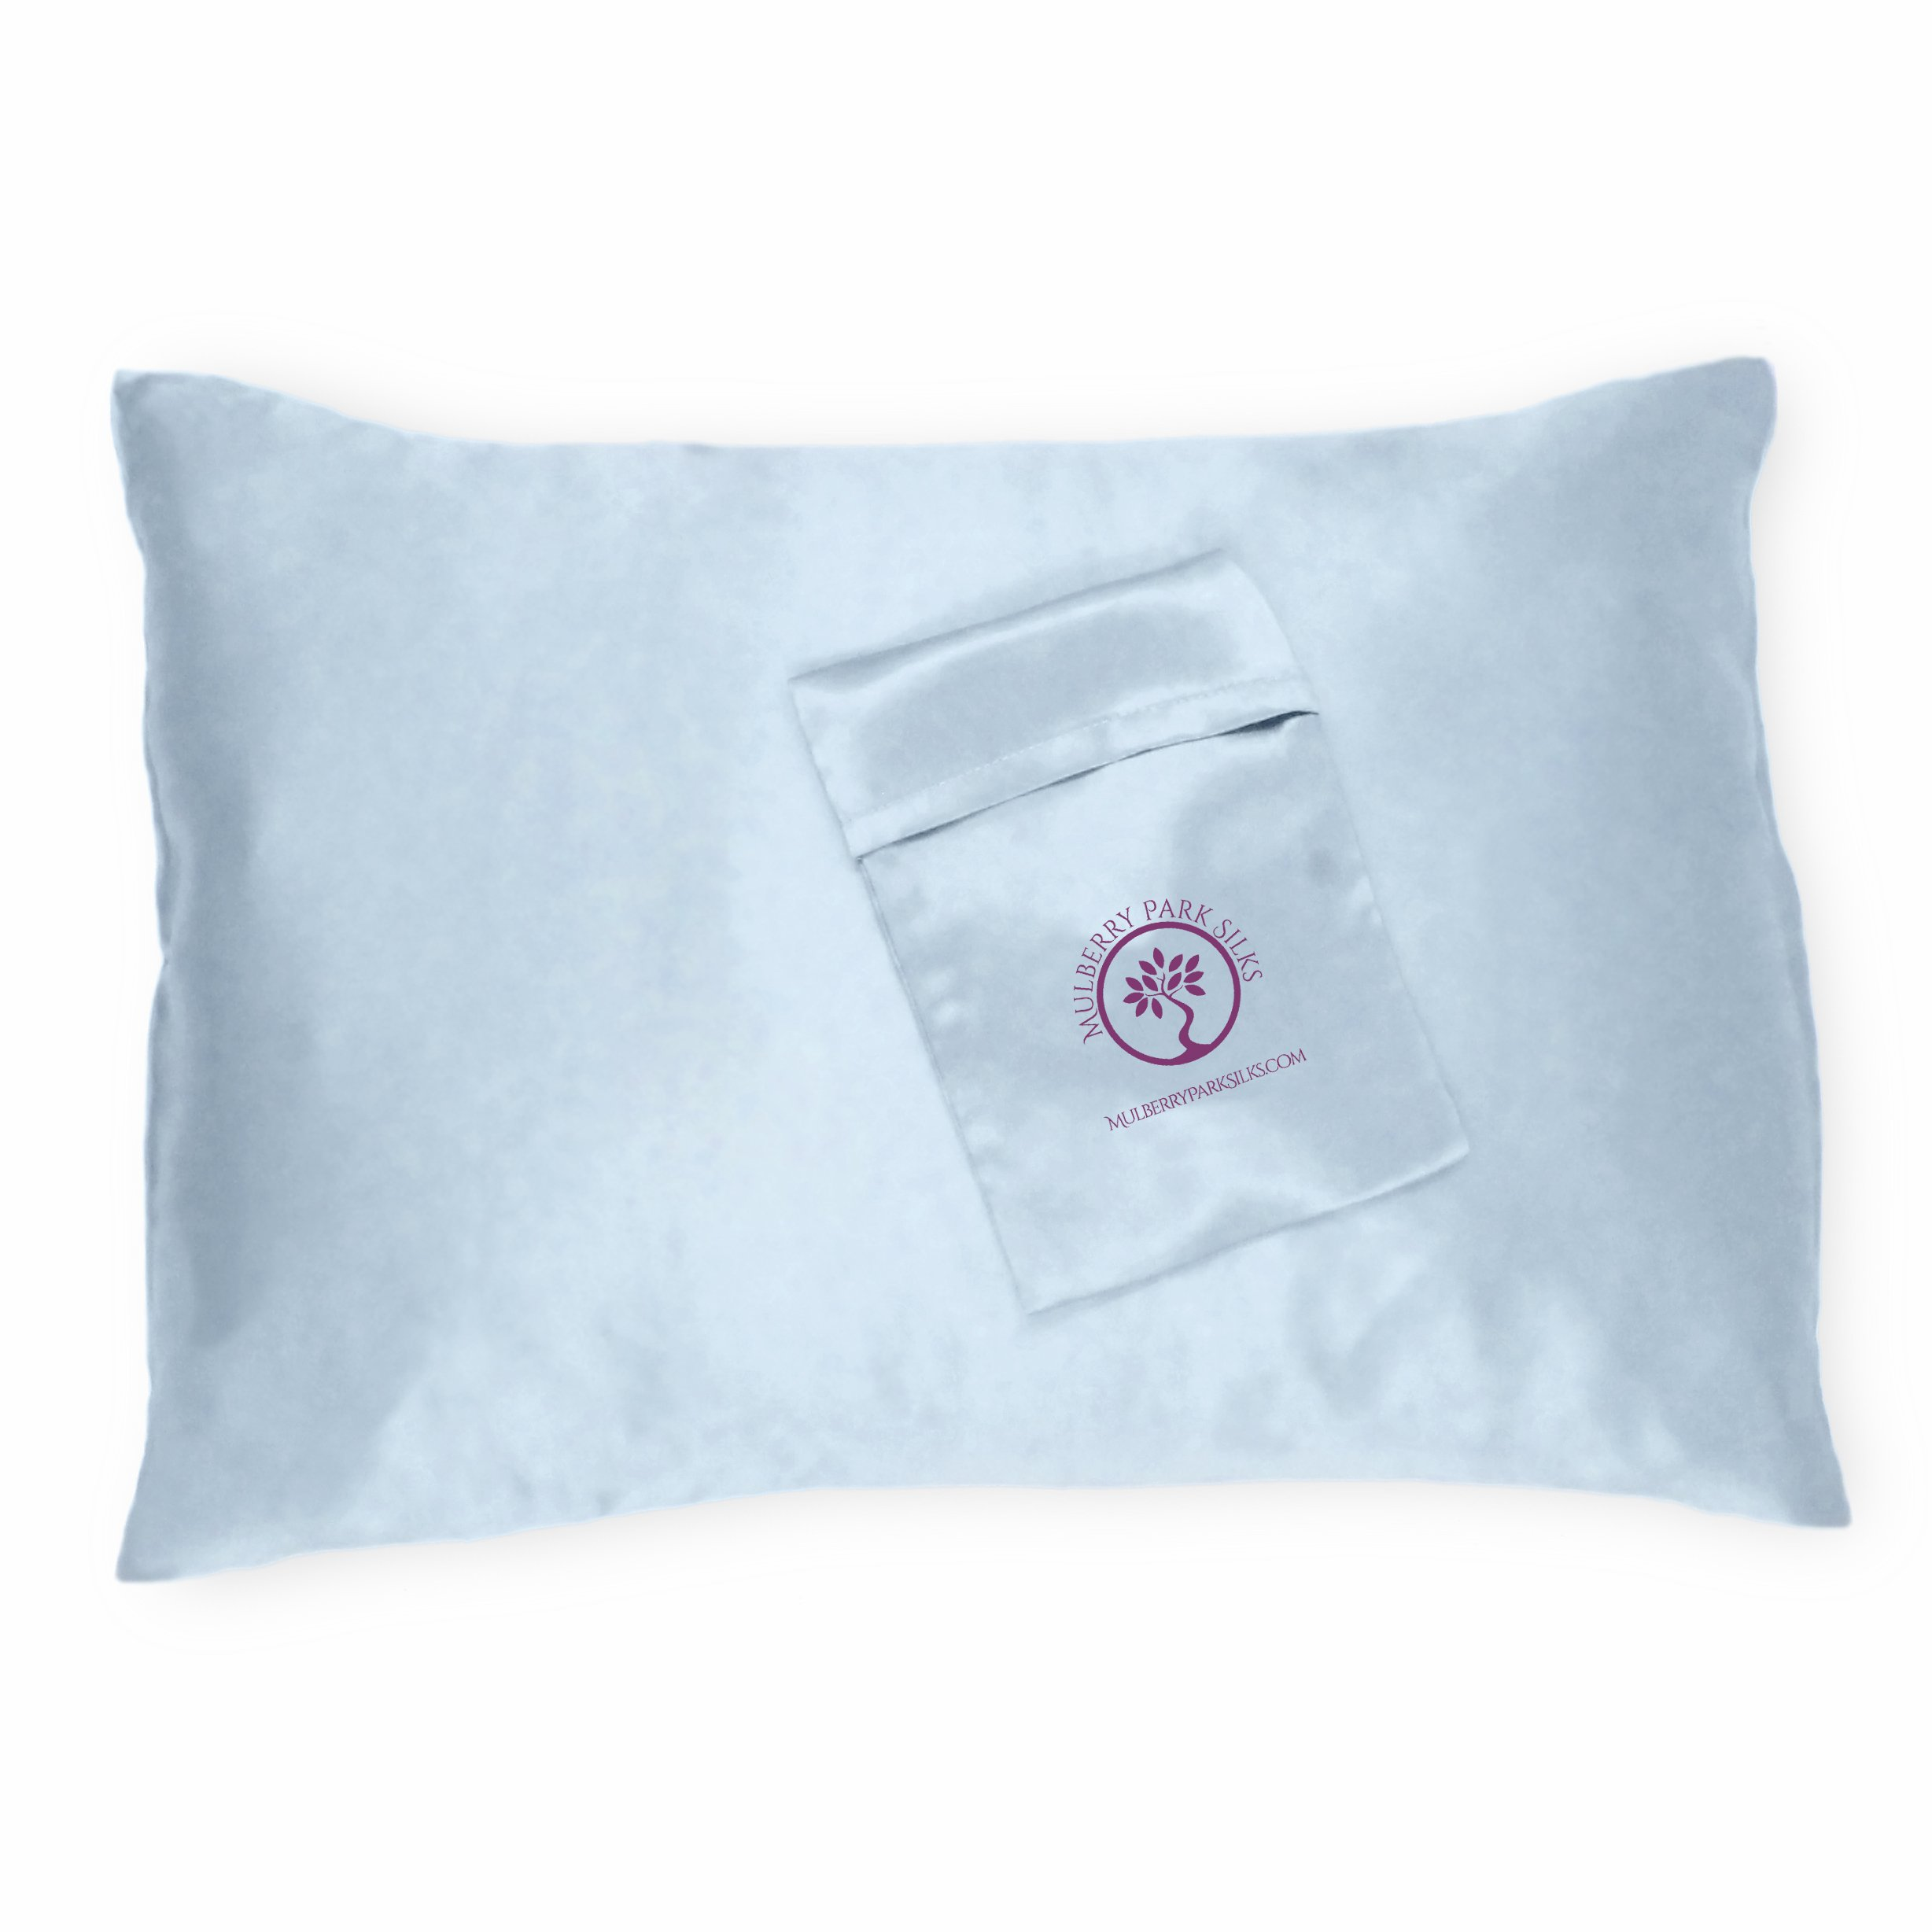 travel pillow case